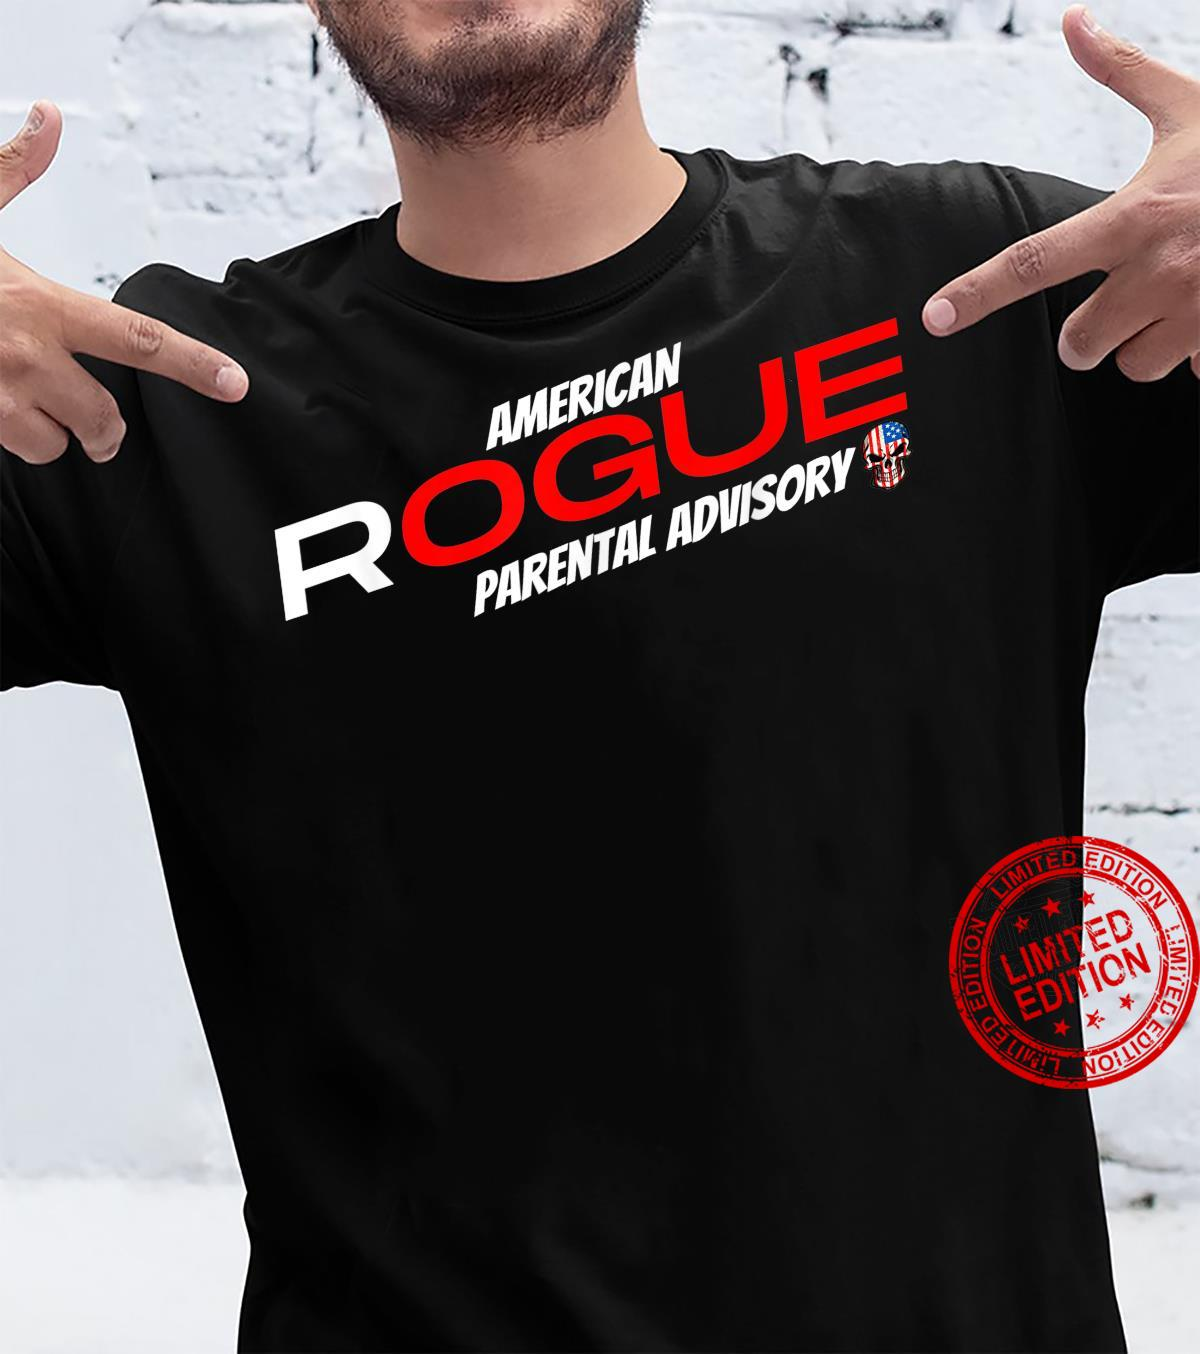 Cool Rogue Patriot Armed Forces Style Military Tough Guy Gym Shirt